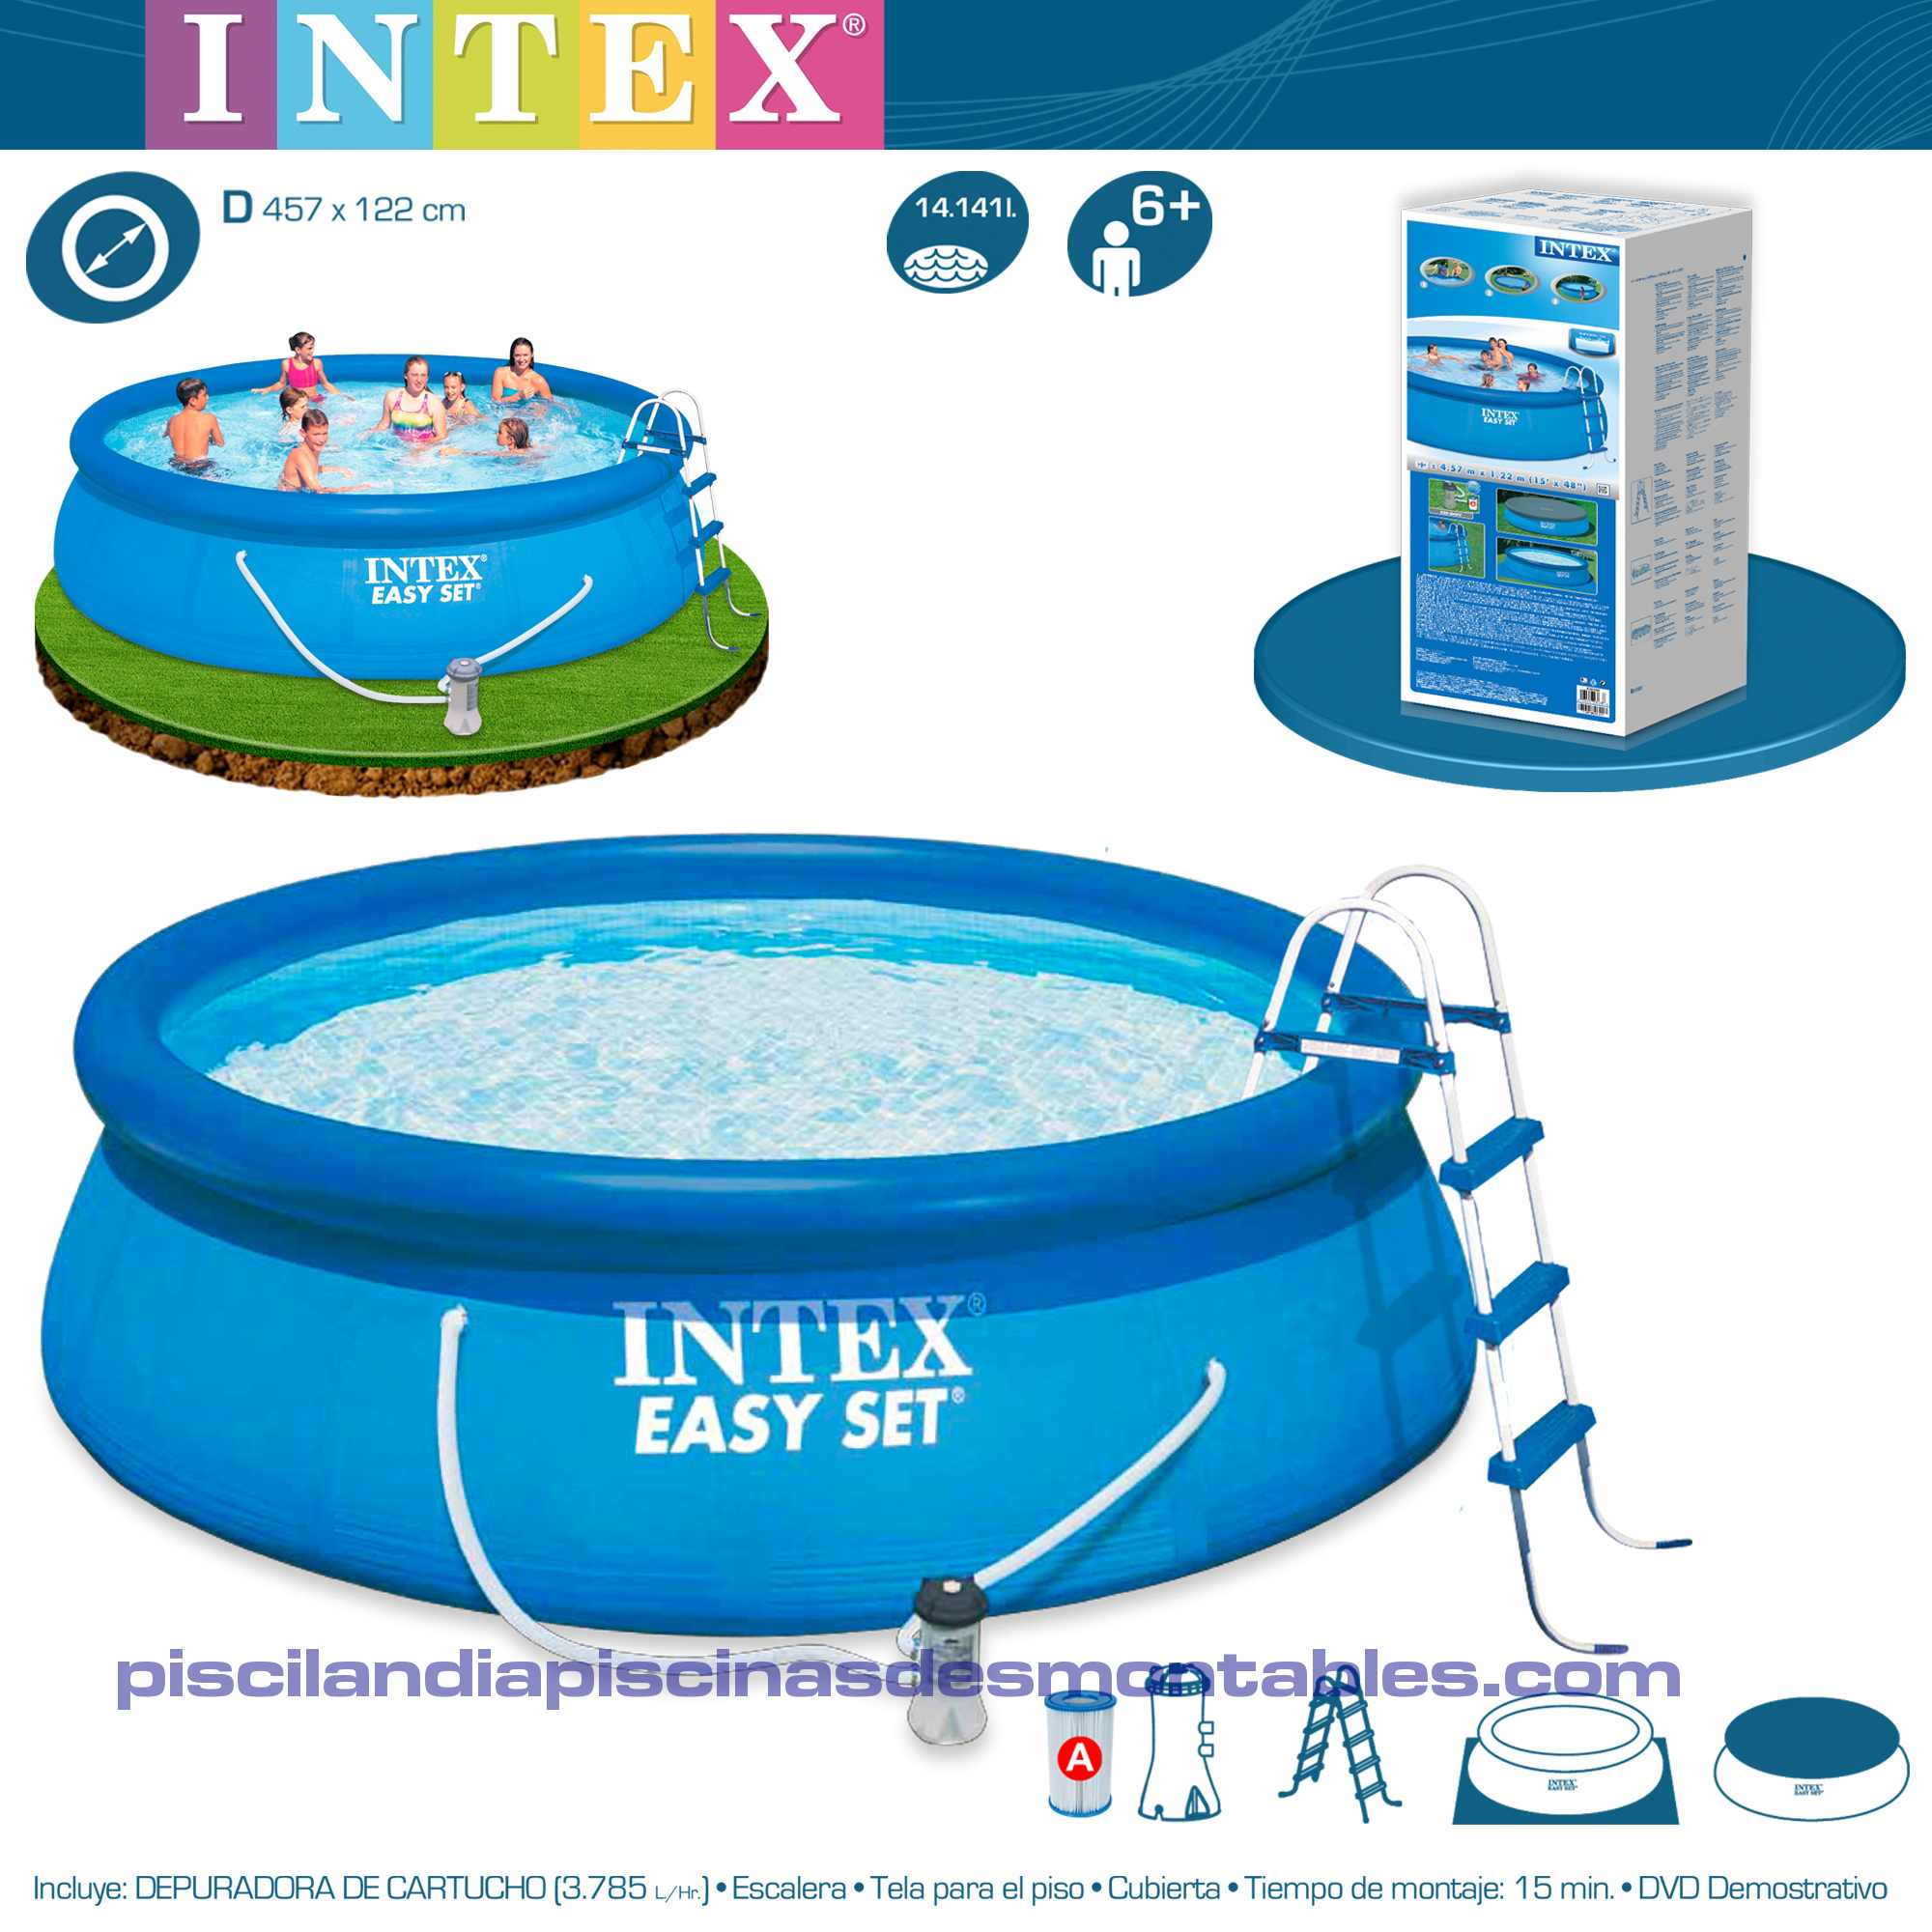 Intex Piscinas Acessorios Piscina Hinchable Intex 457 X 122 Cm Con Depuradora